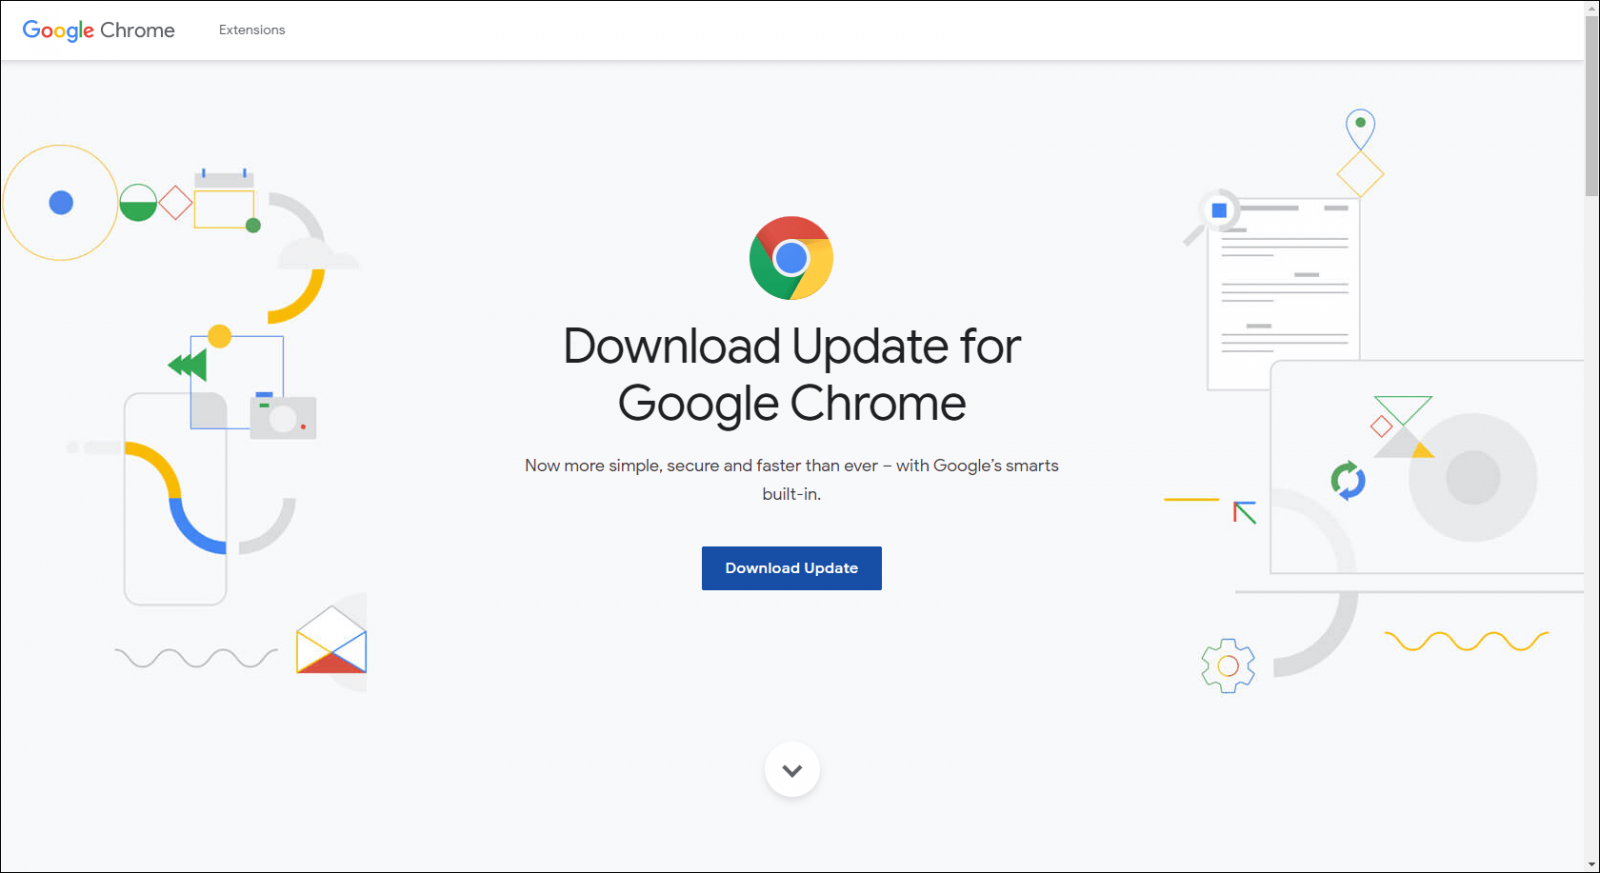 Fake Chrome update page